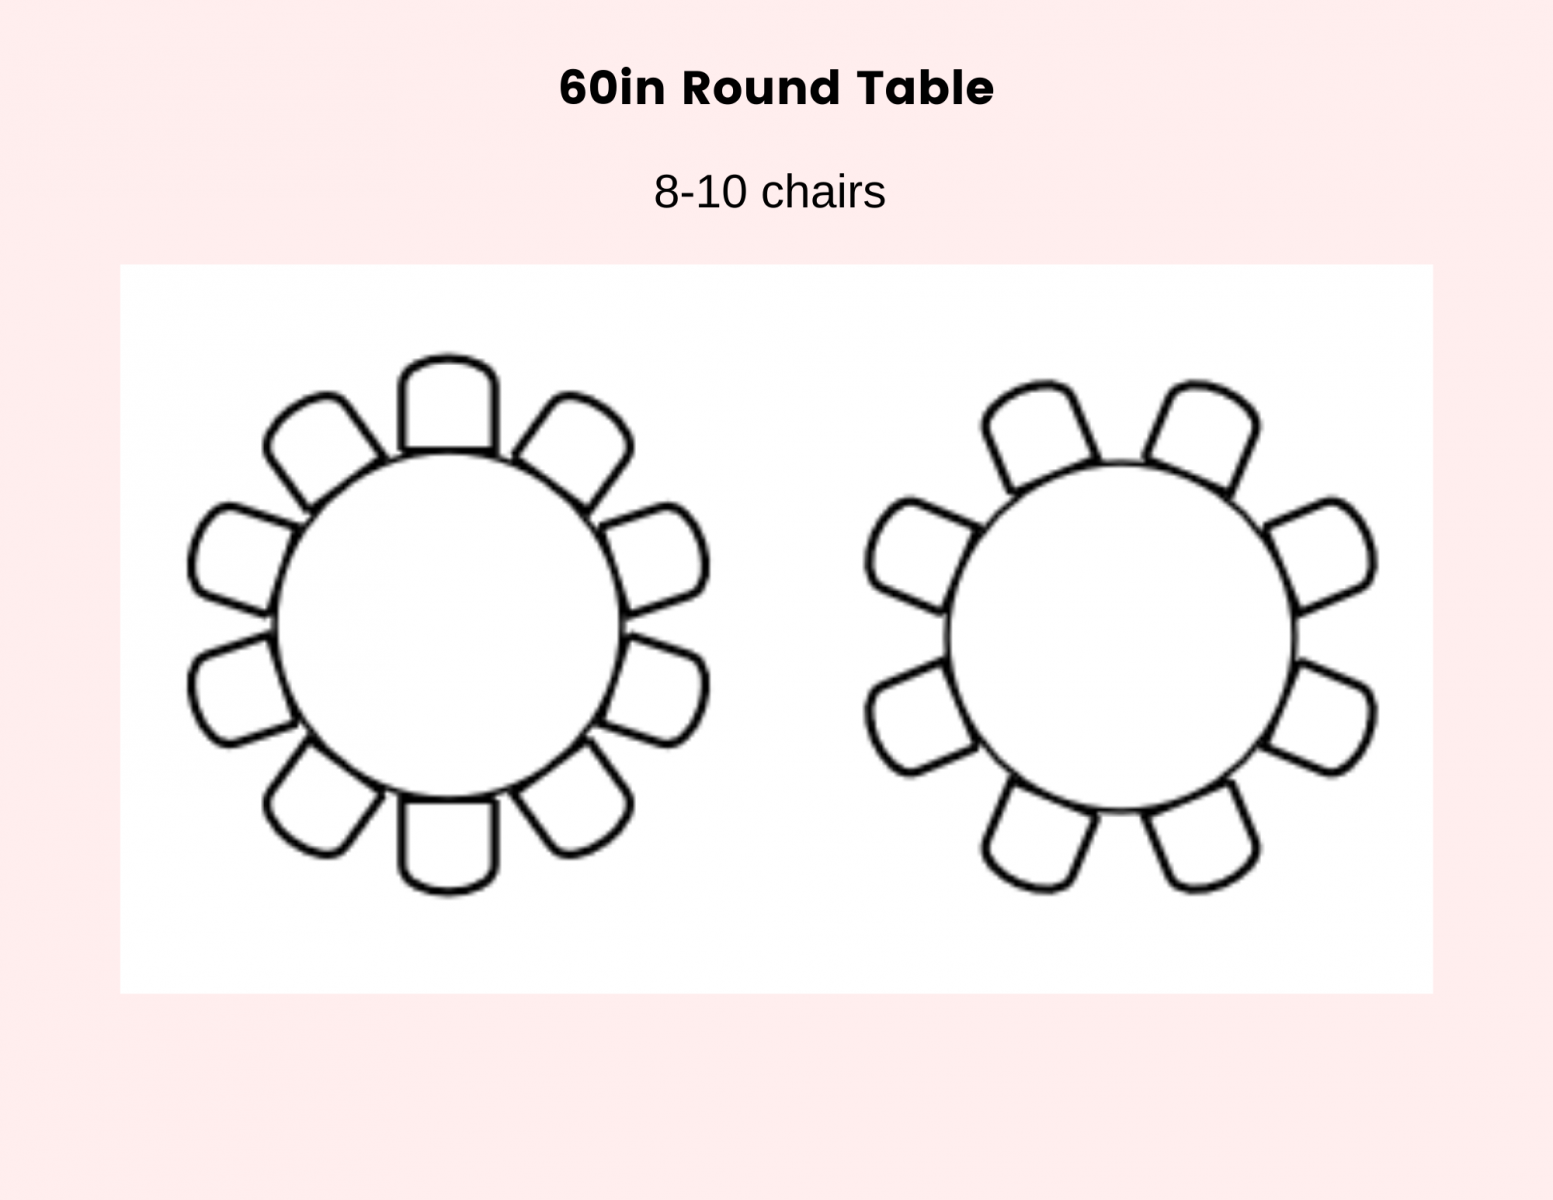 60 Round Table For Rent